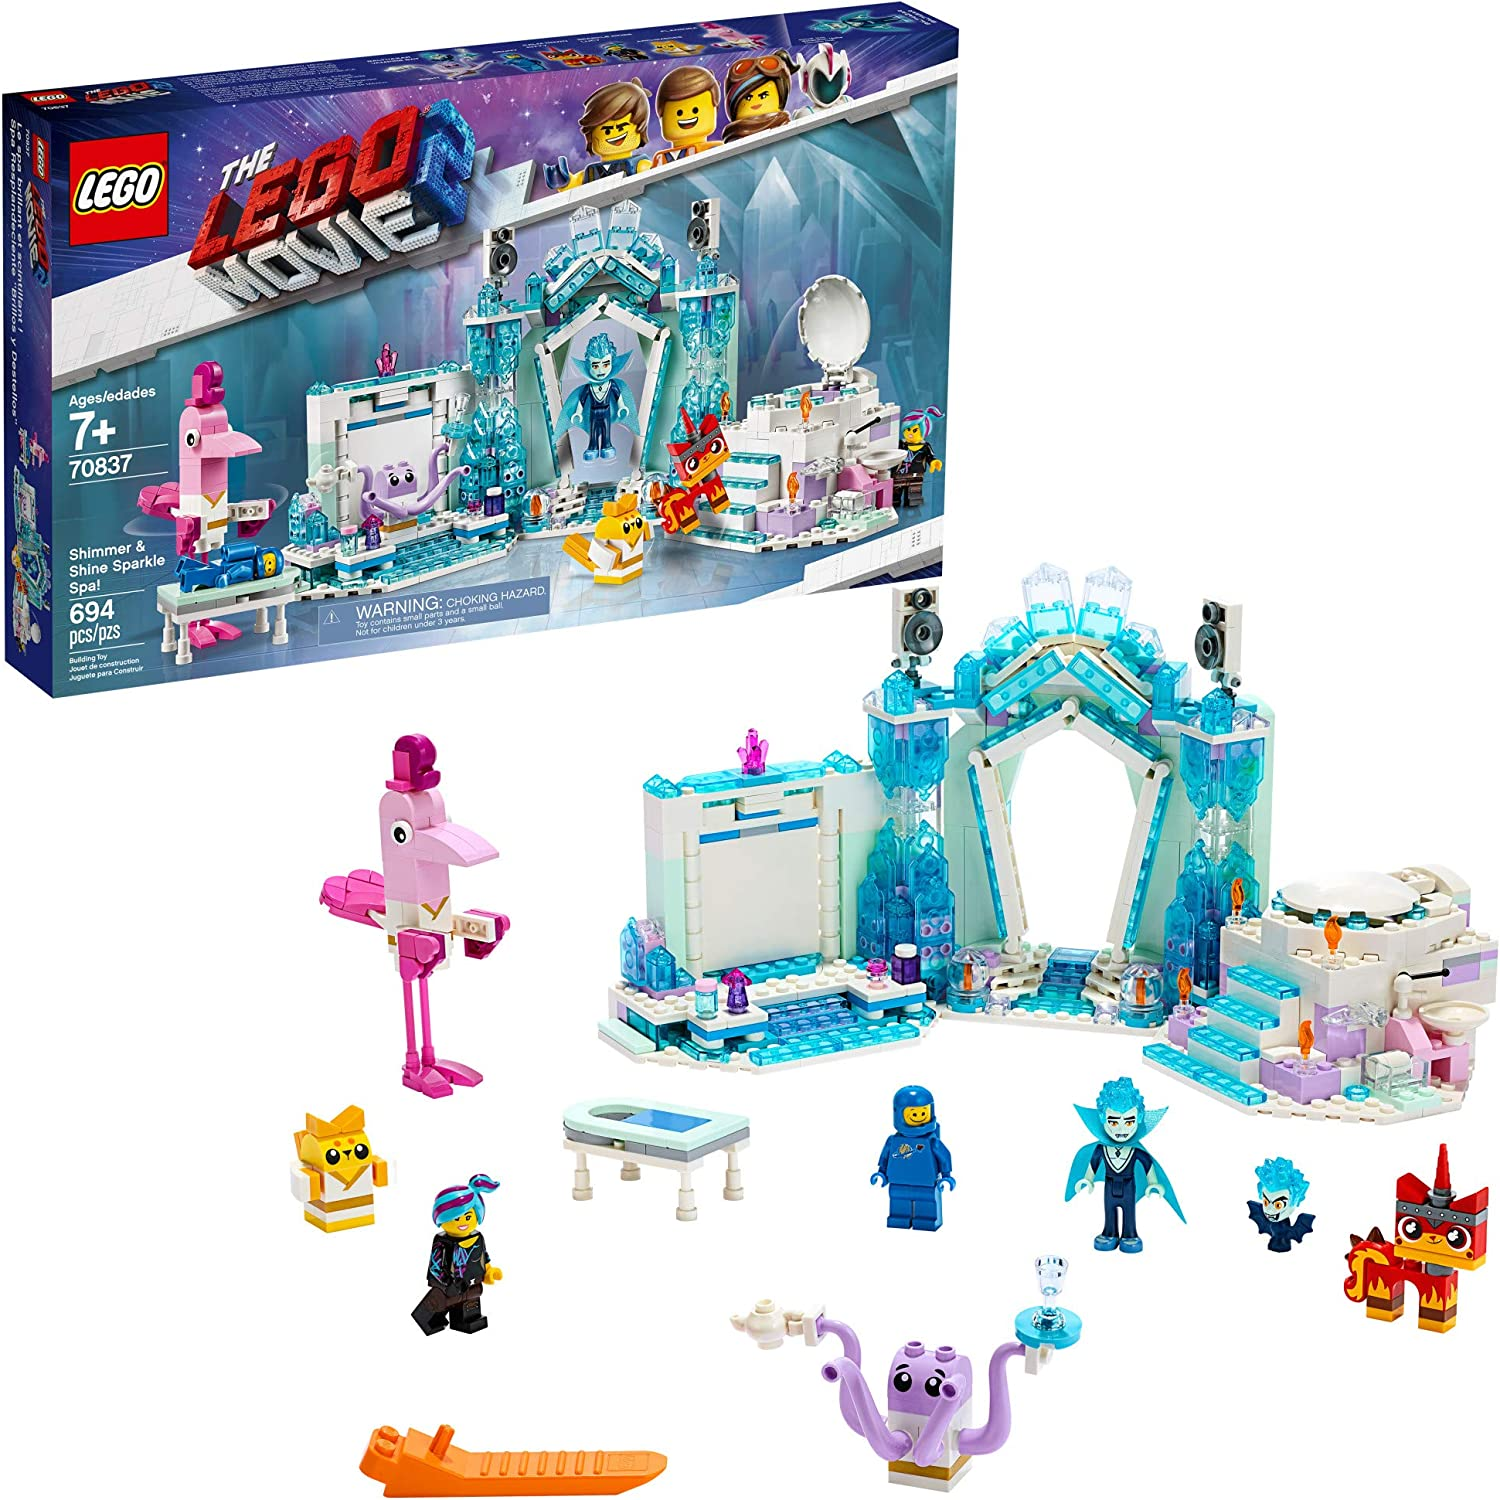 LEGO THE LEGO MOVIE 2 Shimmer & Shine Sparkle Spa; 70837 Building Kit (694 Pieces)